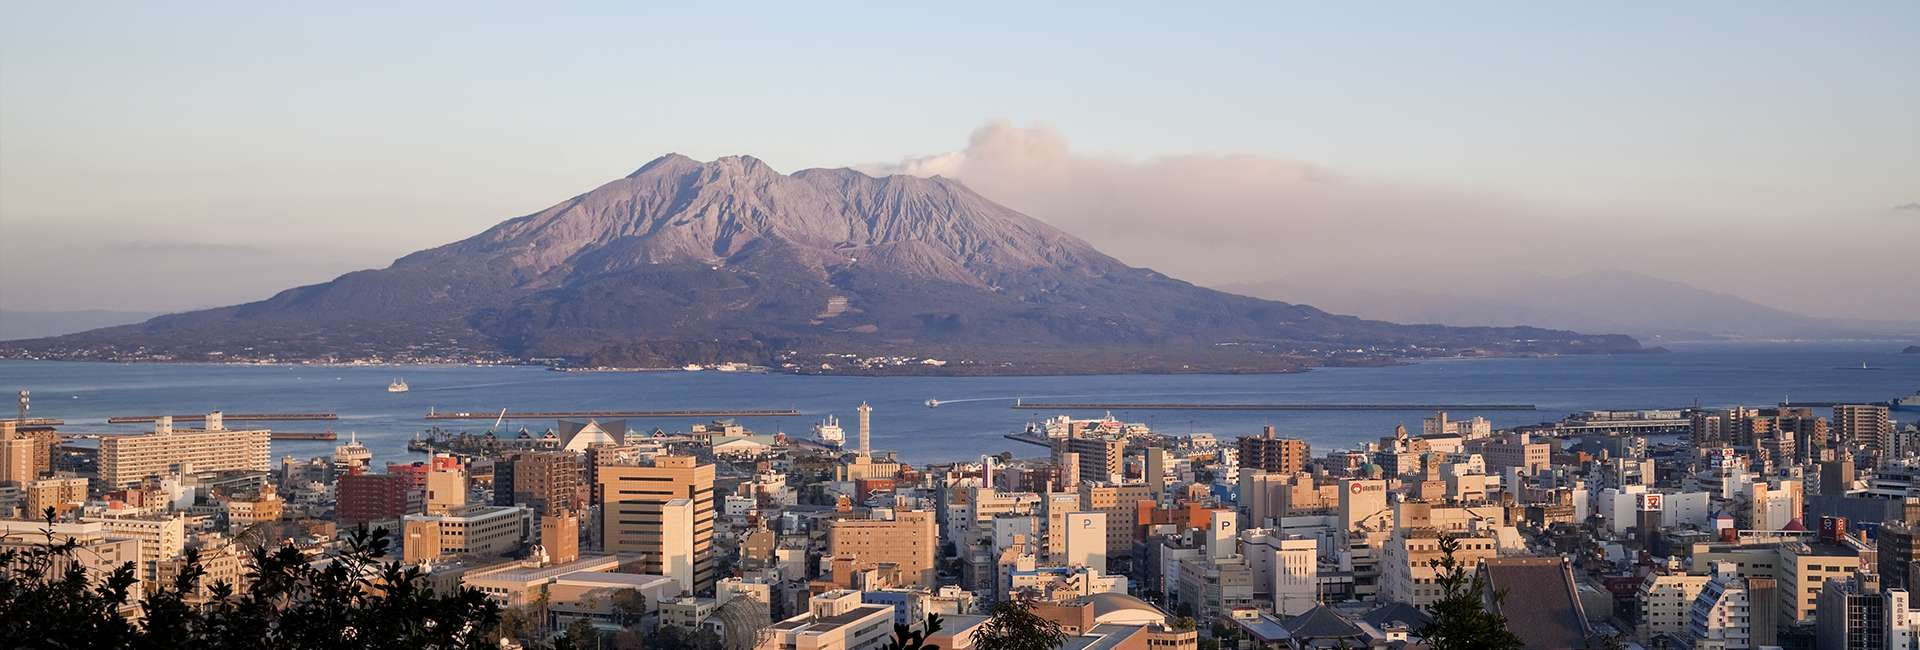 Mount Sakurajima in front of the city of kagoshima